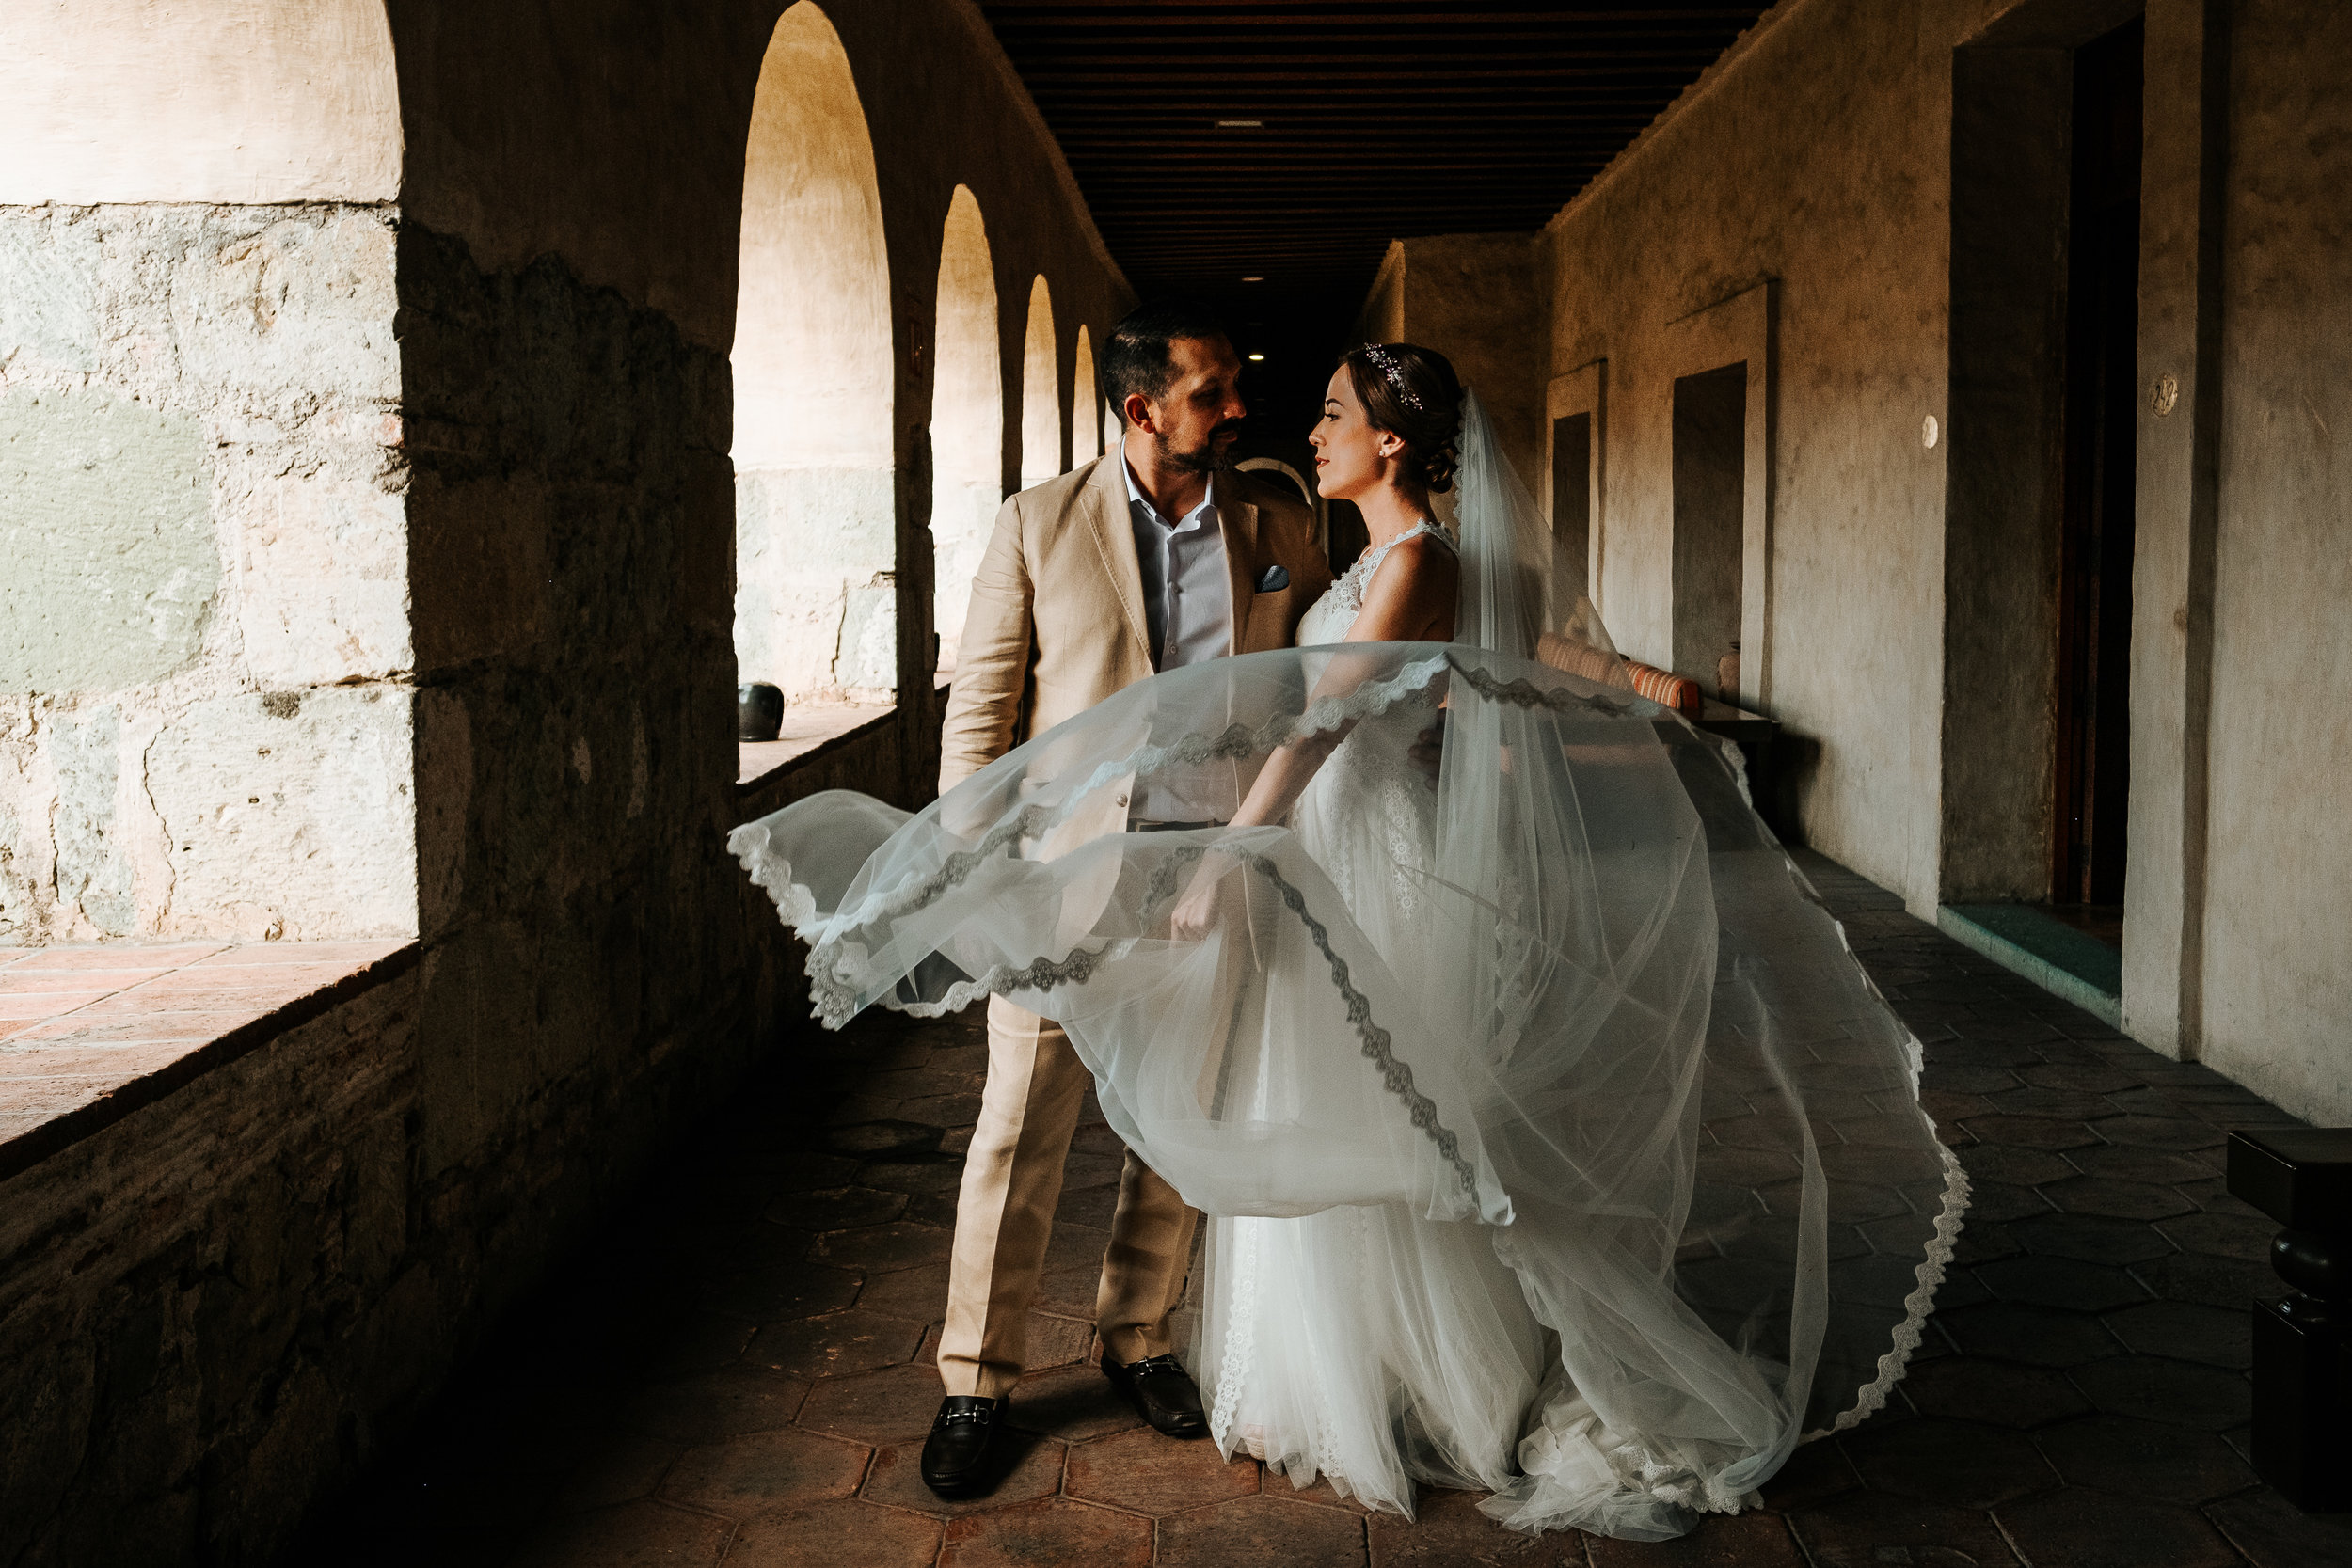 Malena & Armando - Beautiful wedding at Oaxaca, Mexico